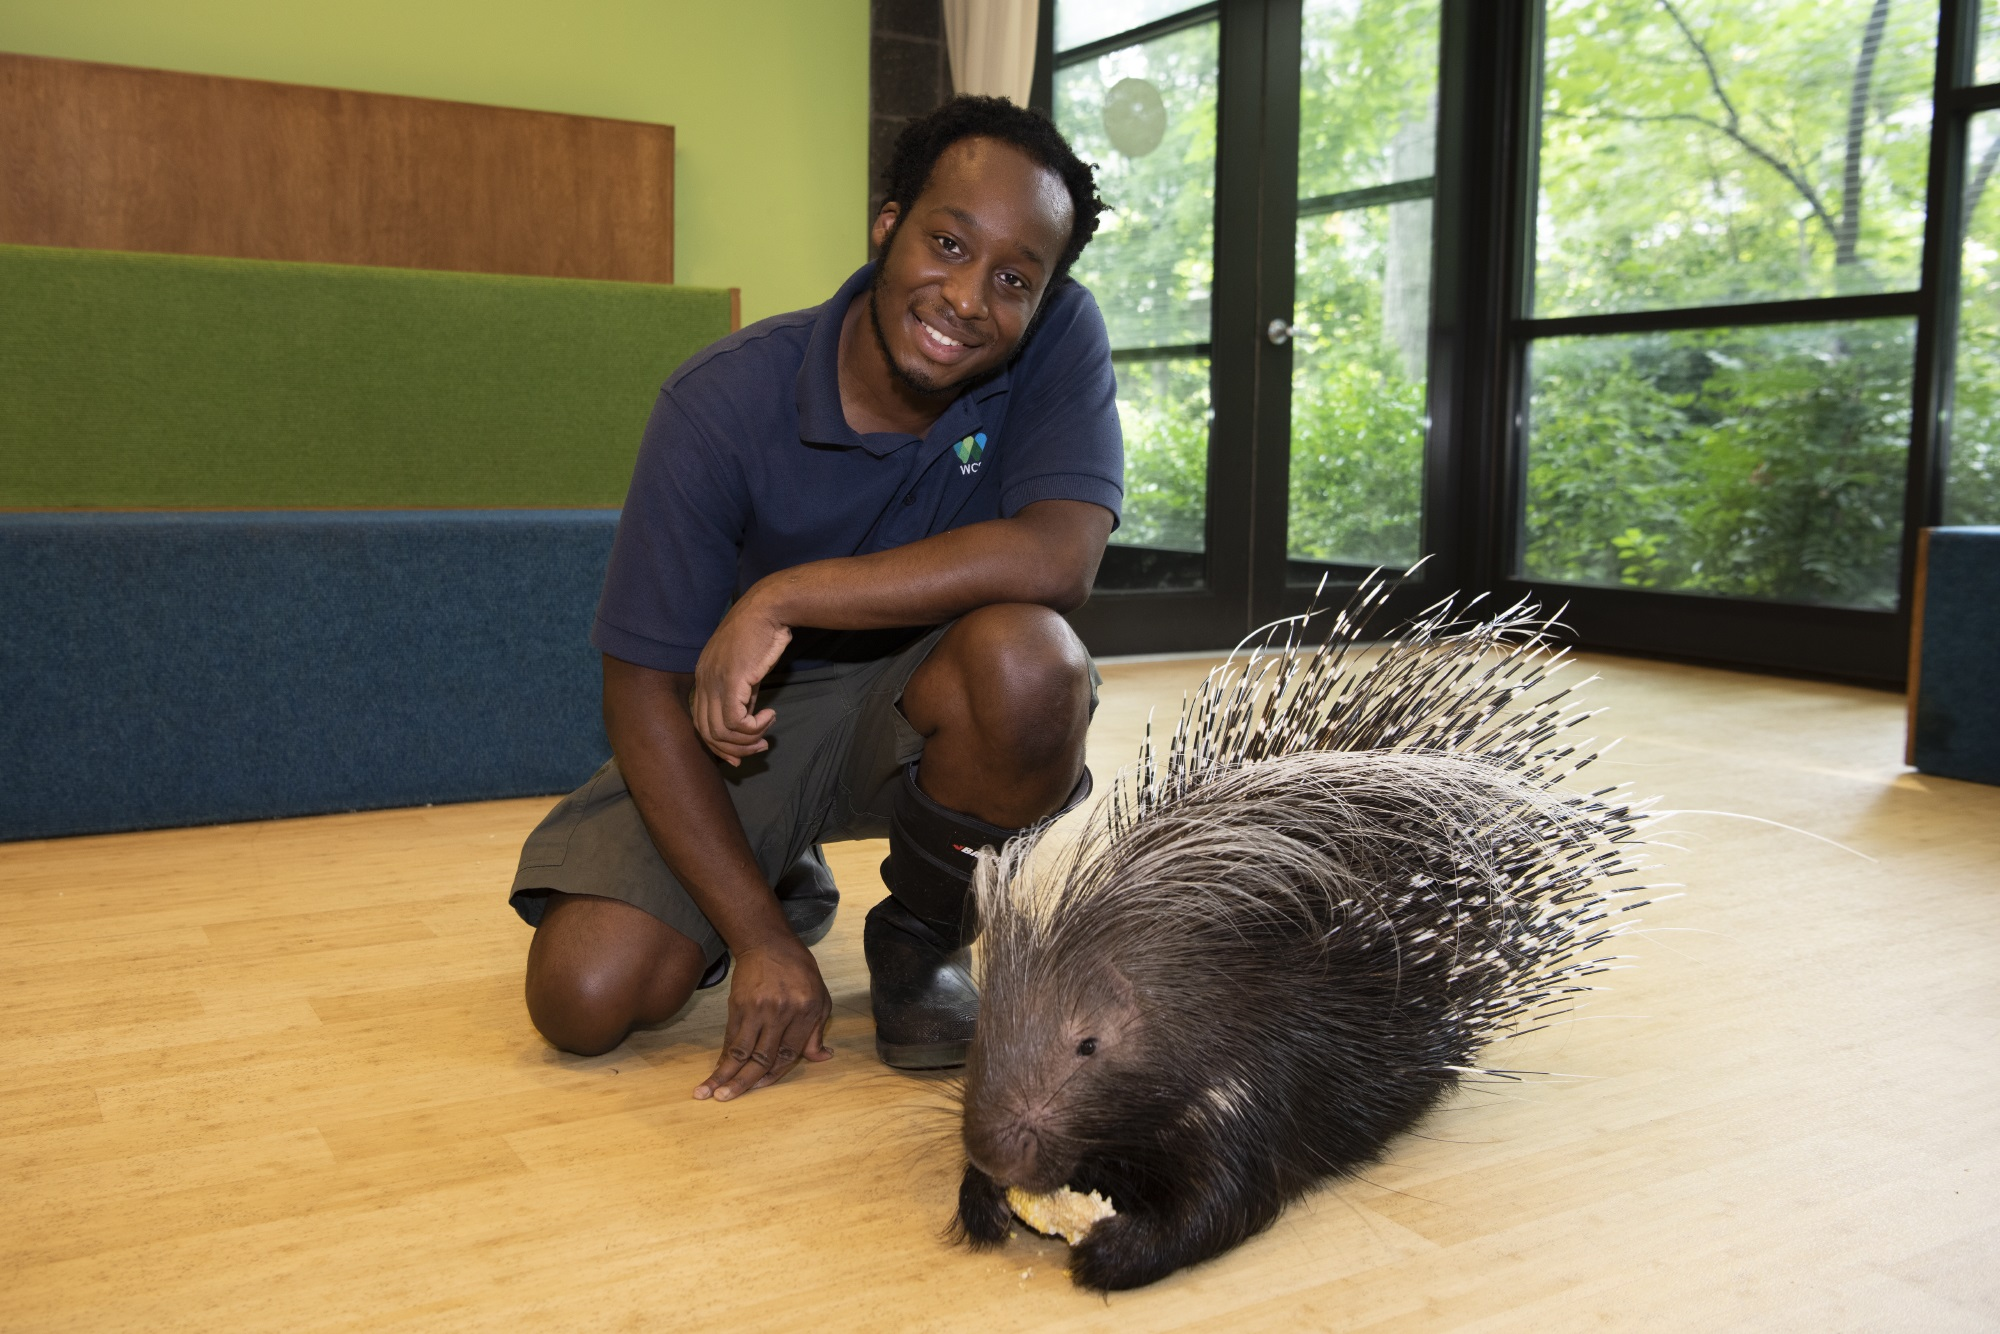 a-wild-animal-keeper-embraces-a-life-of-animal-encounters